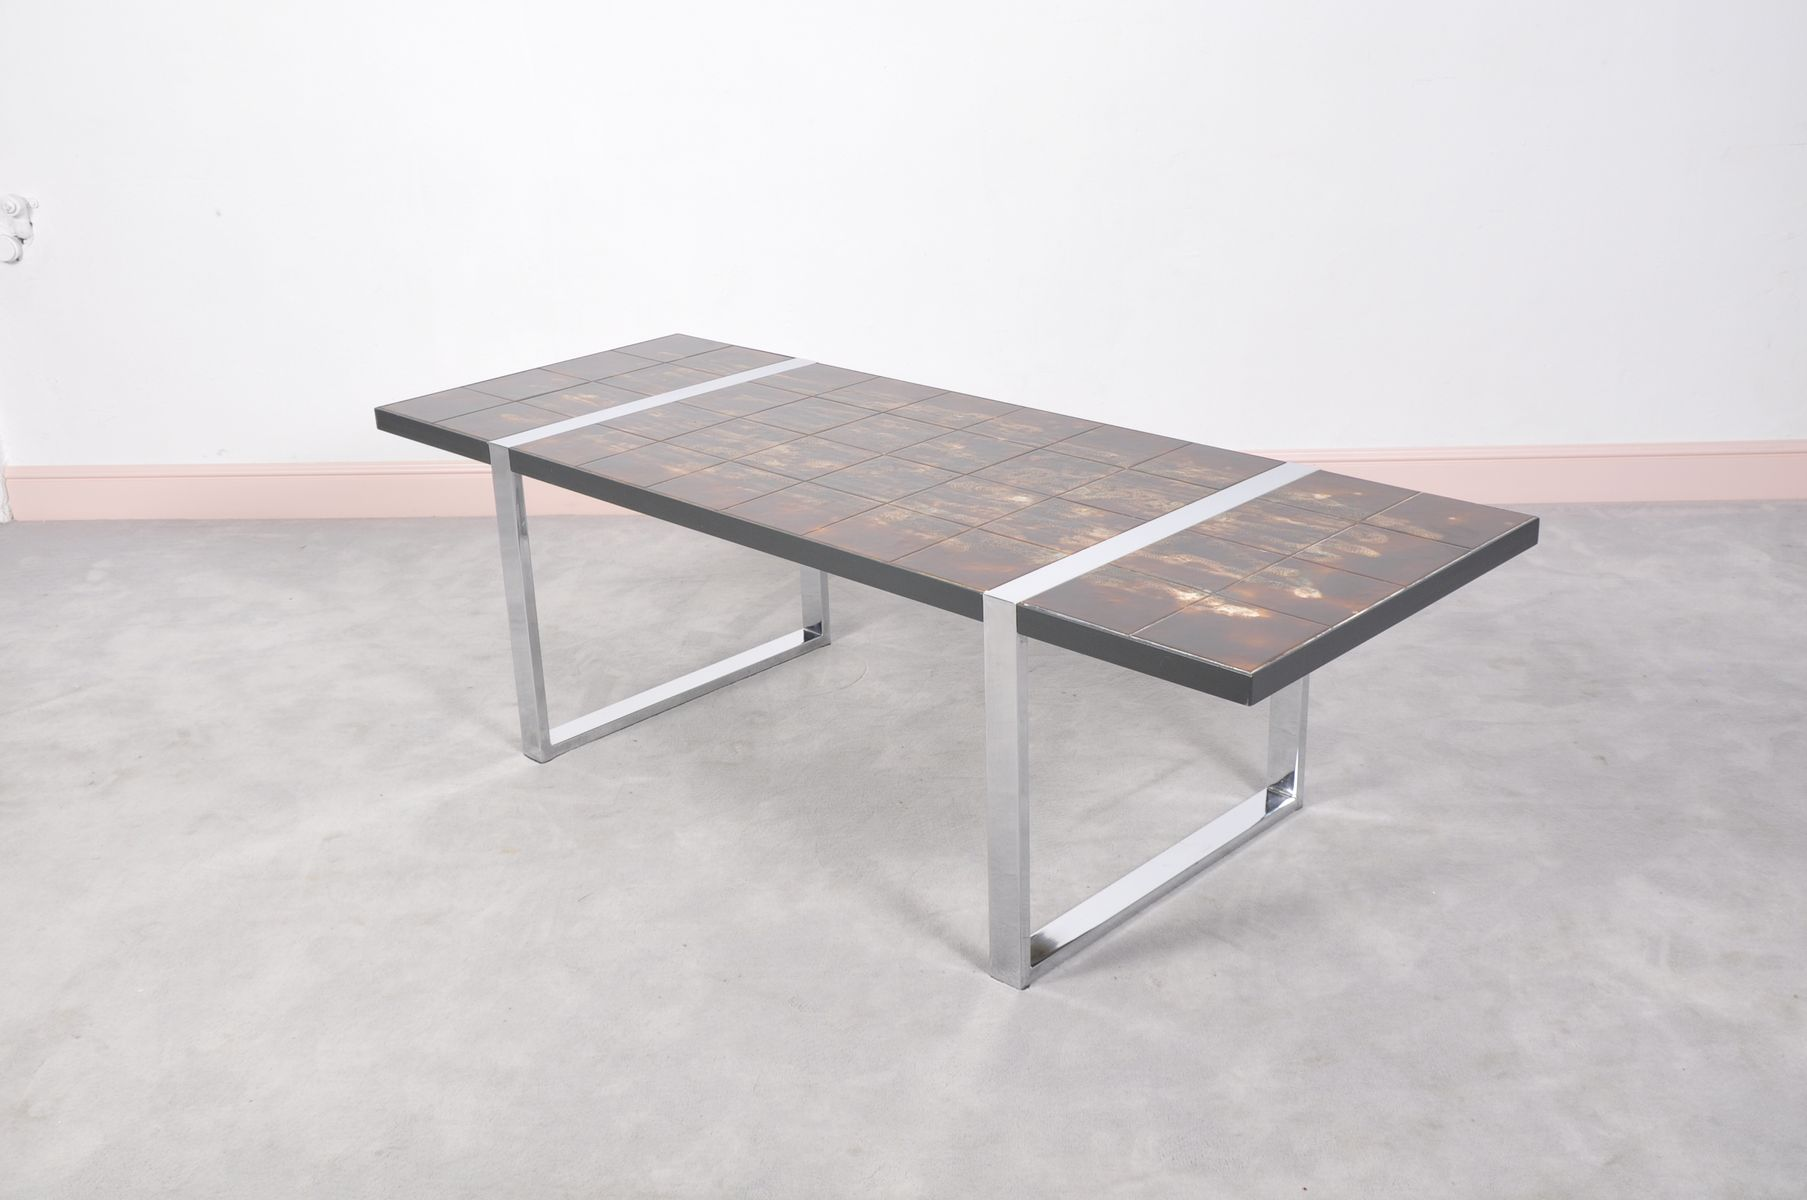 Coffee Table With Ceramic Tile Top By Juliette Belarti 1960s For Sale At Pamono